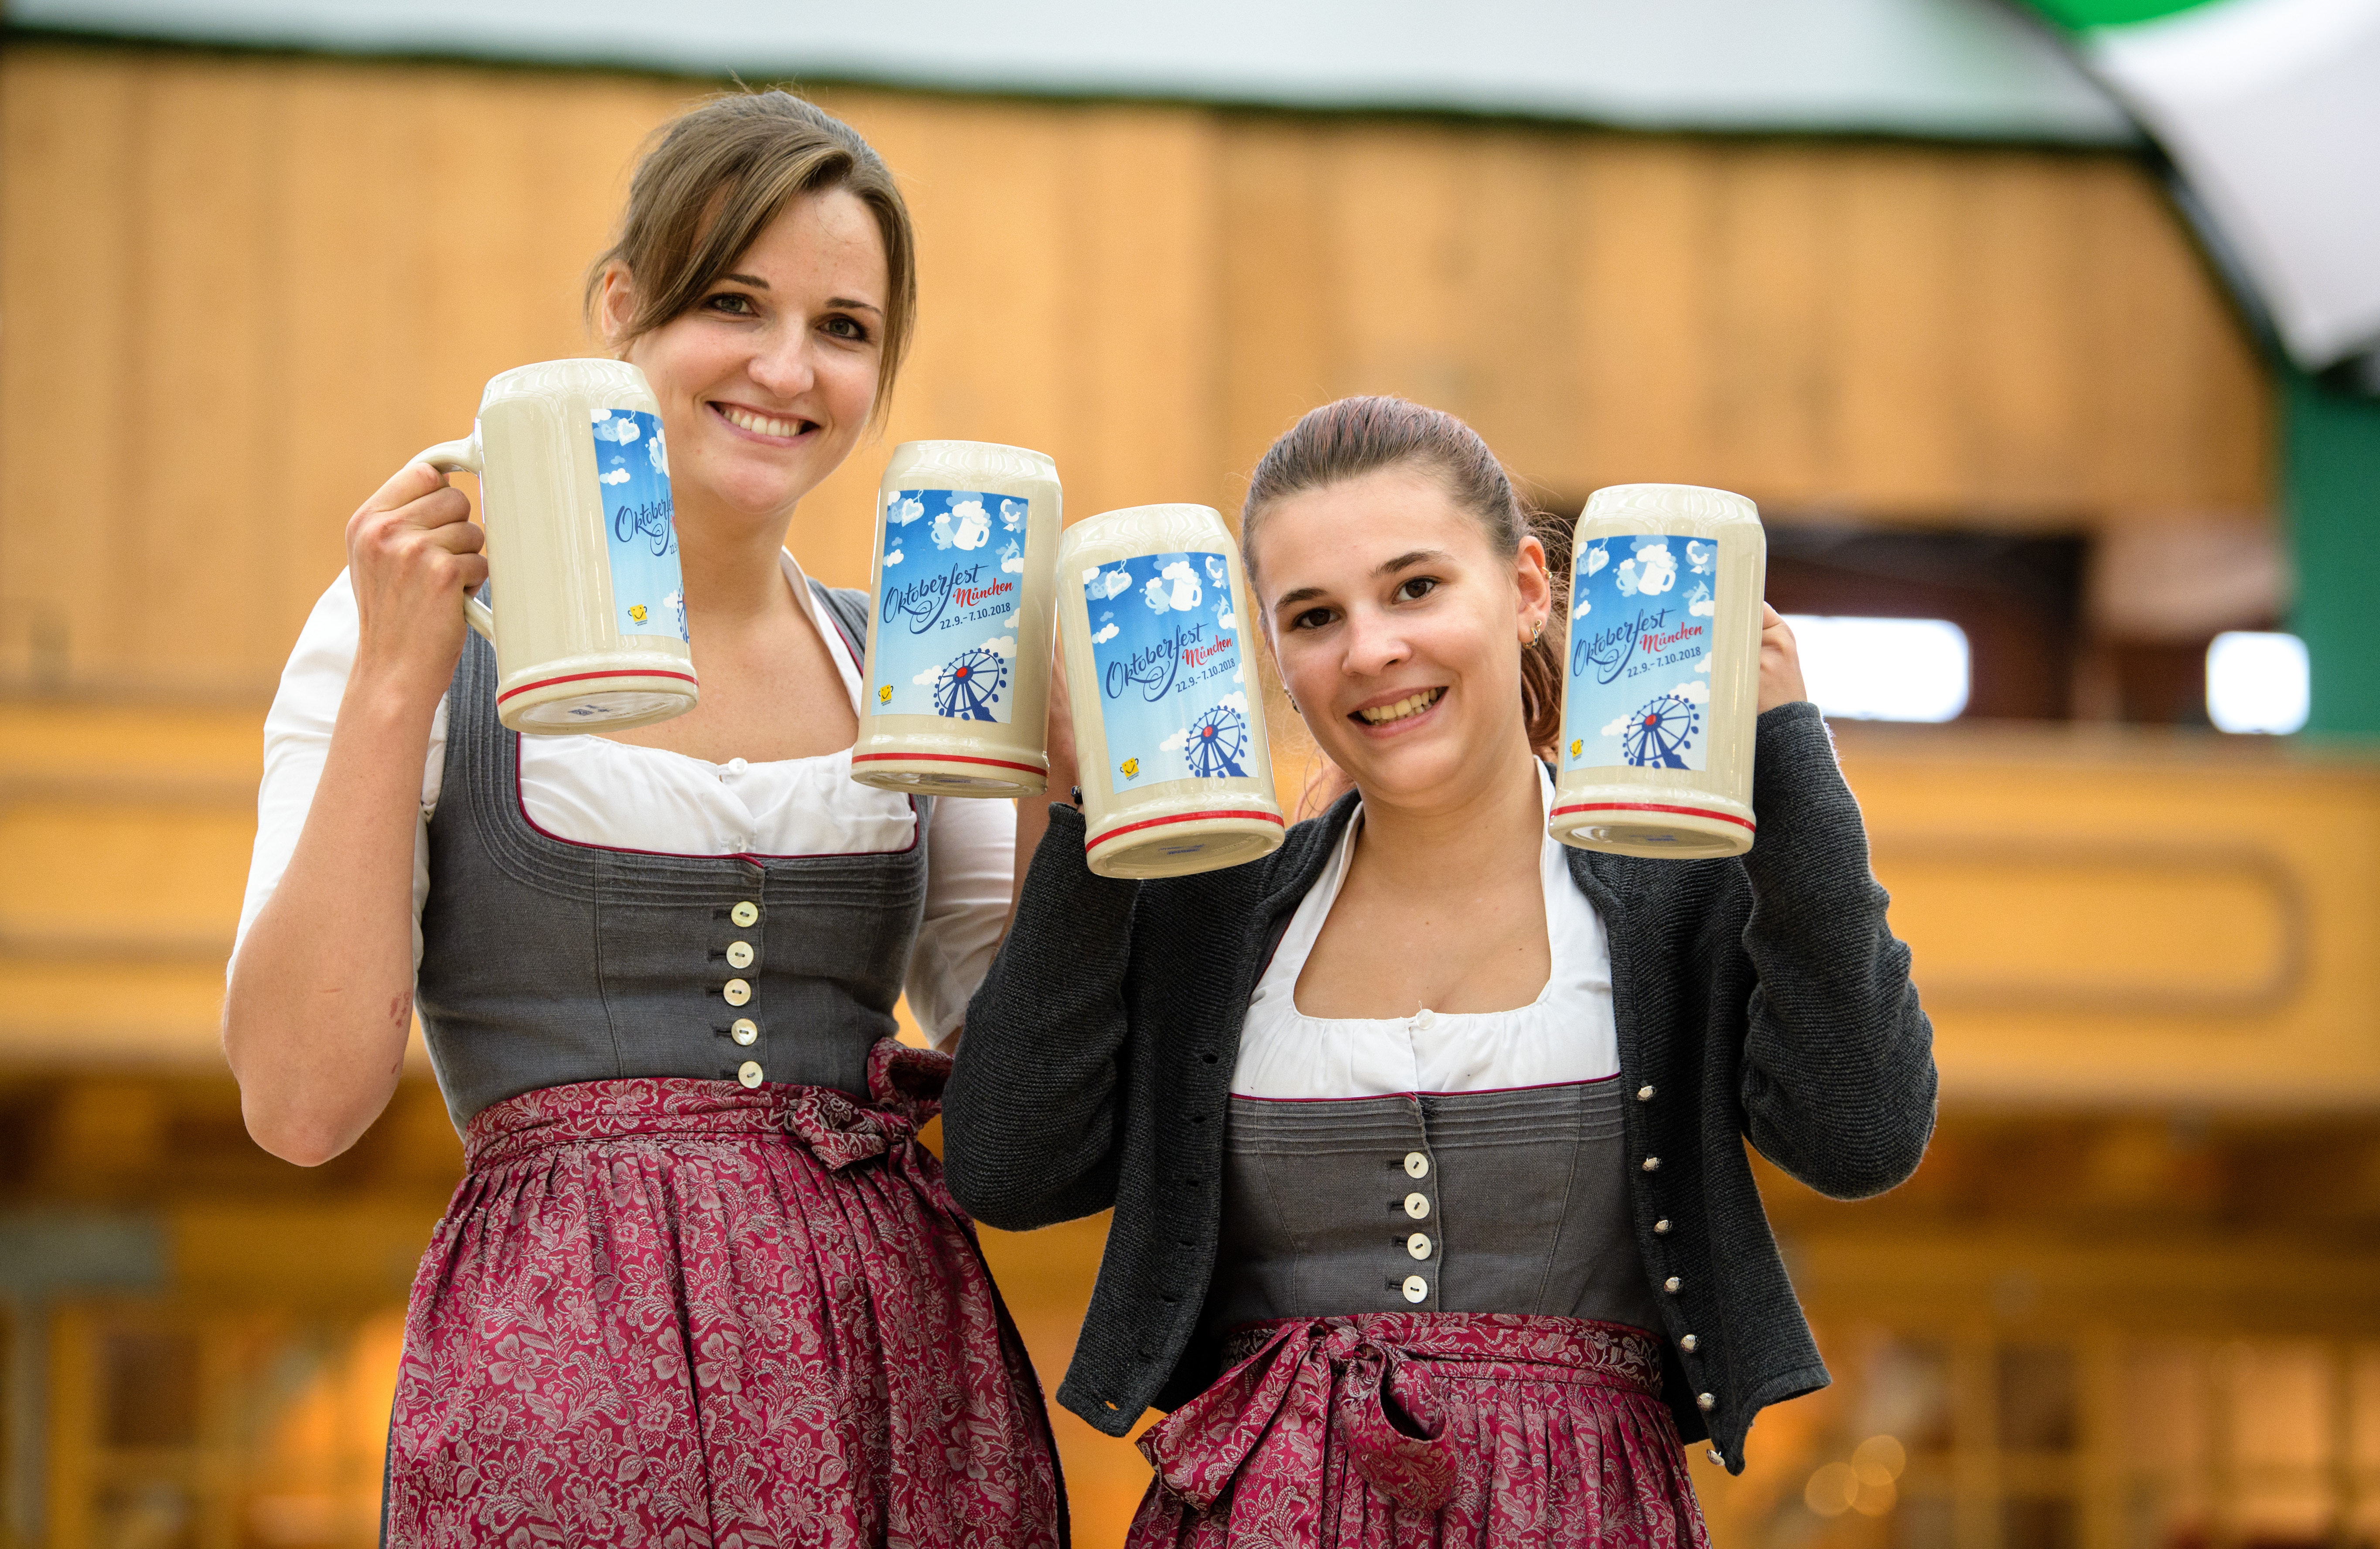 The traditional Bavarian dress